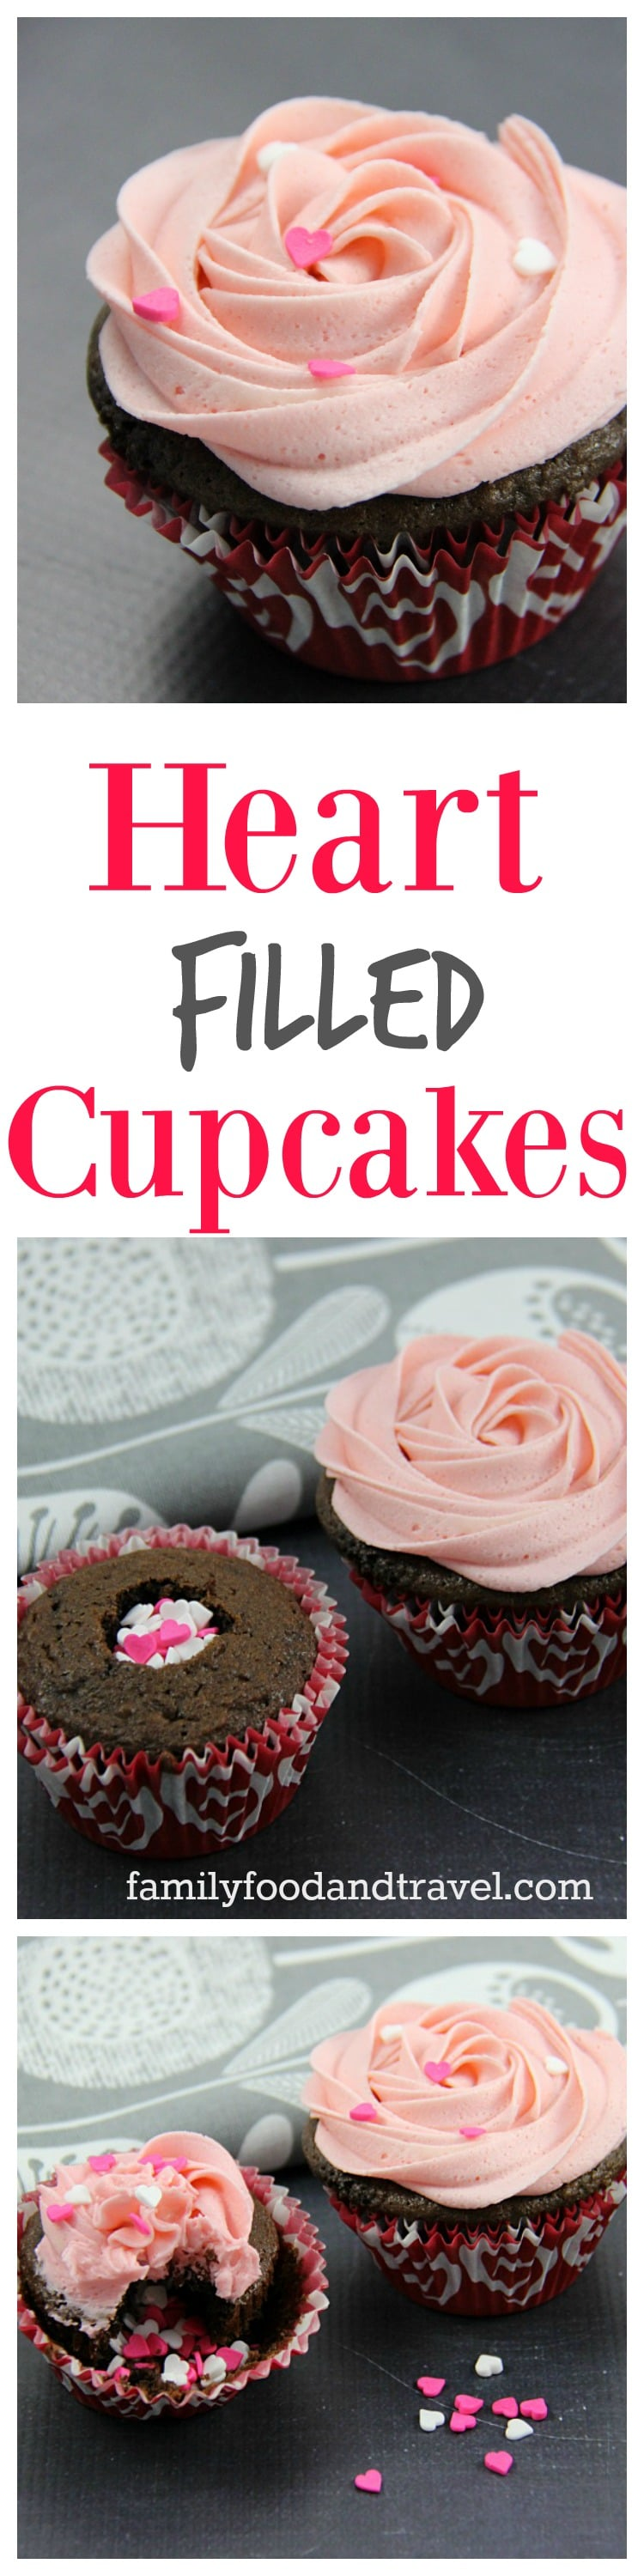 Heart Filled Cupcakes Collage 2